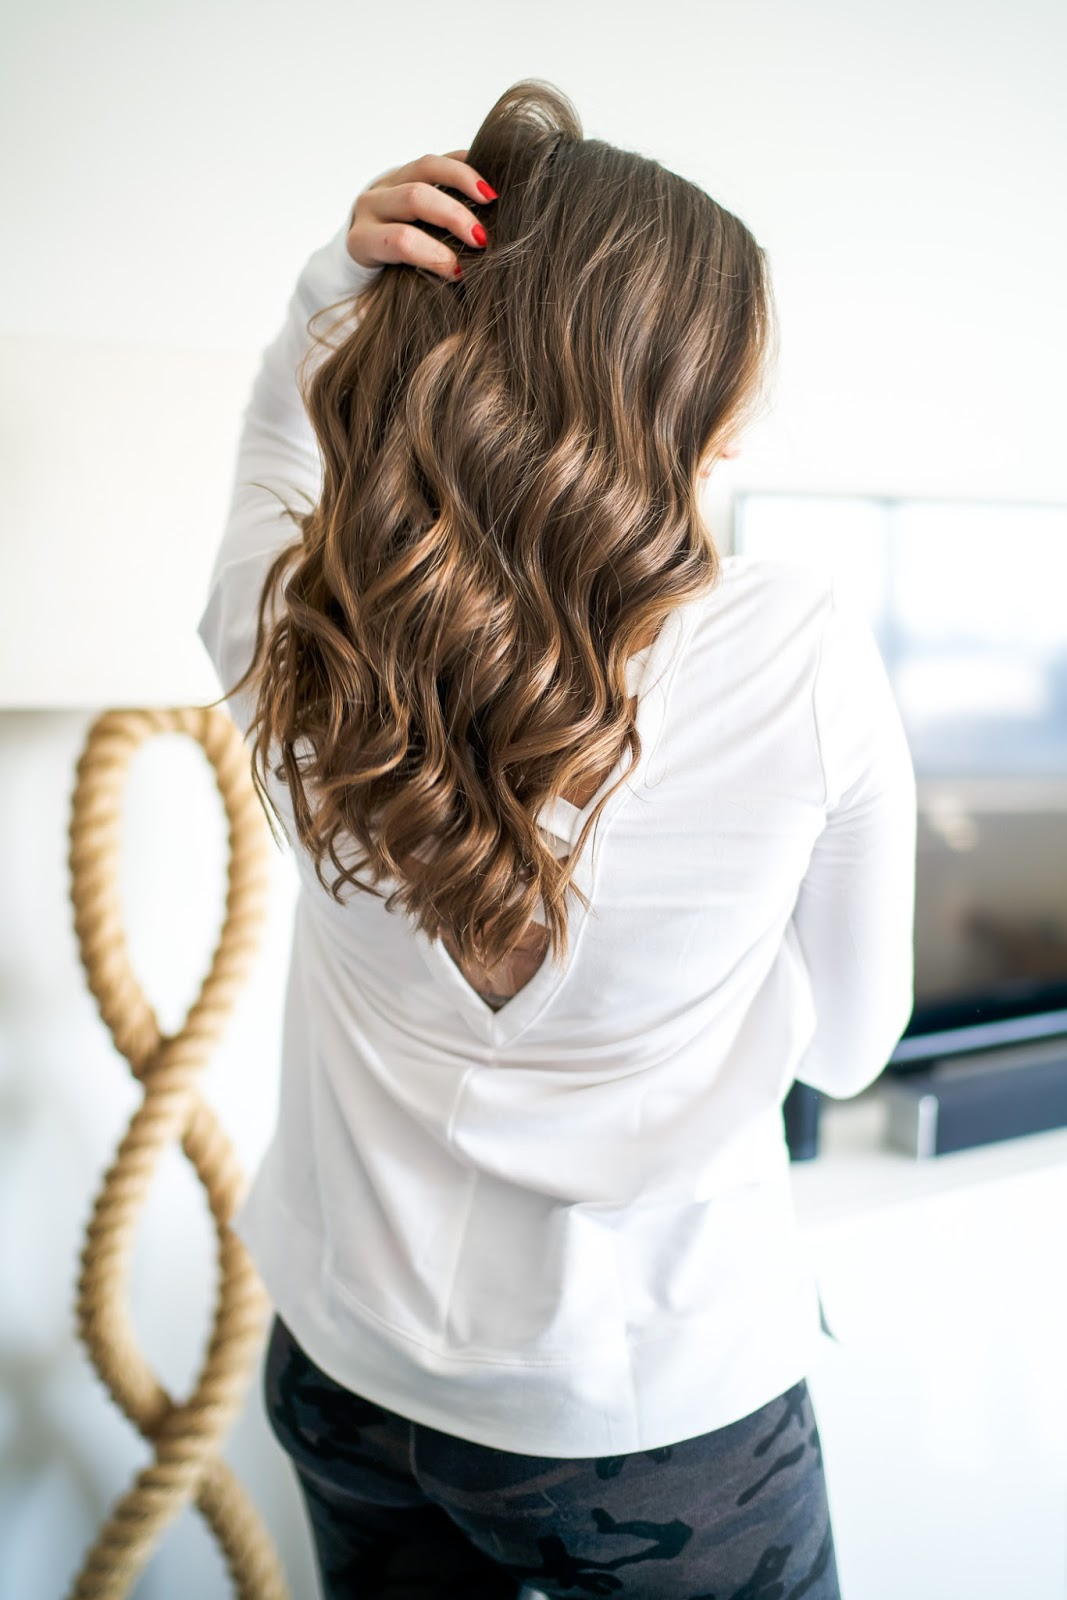 How to Curl Your Hair Tutorial by popular New York style blogger Covering the Bases